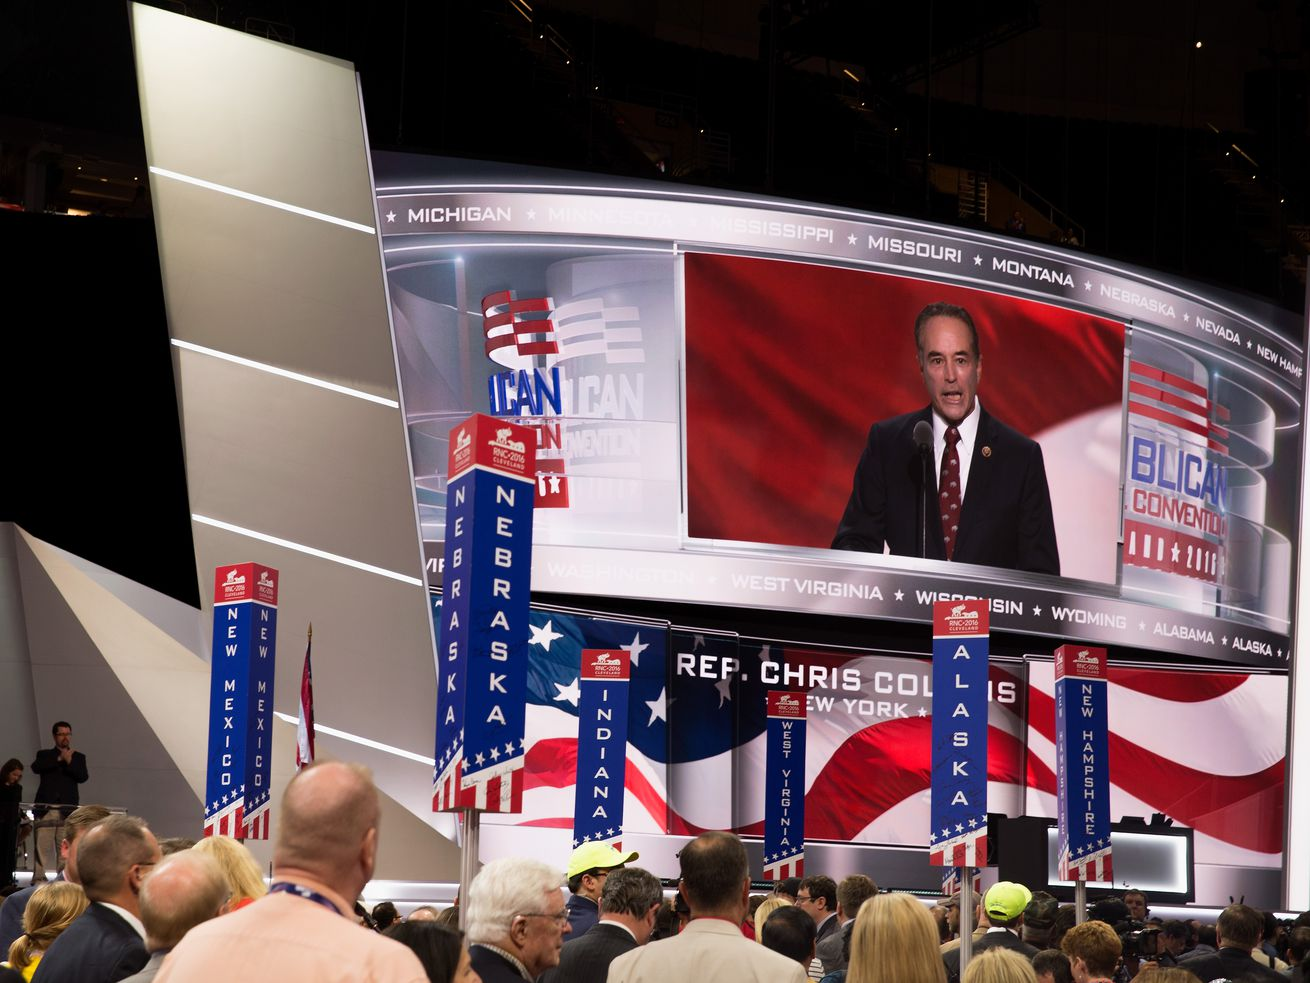 Rep. Chris Collins speaks at the second day of the Republican National Convention on July 19, 2016, at the Quicken Loans Arena in Cleveland.